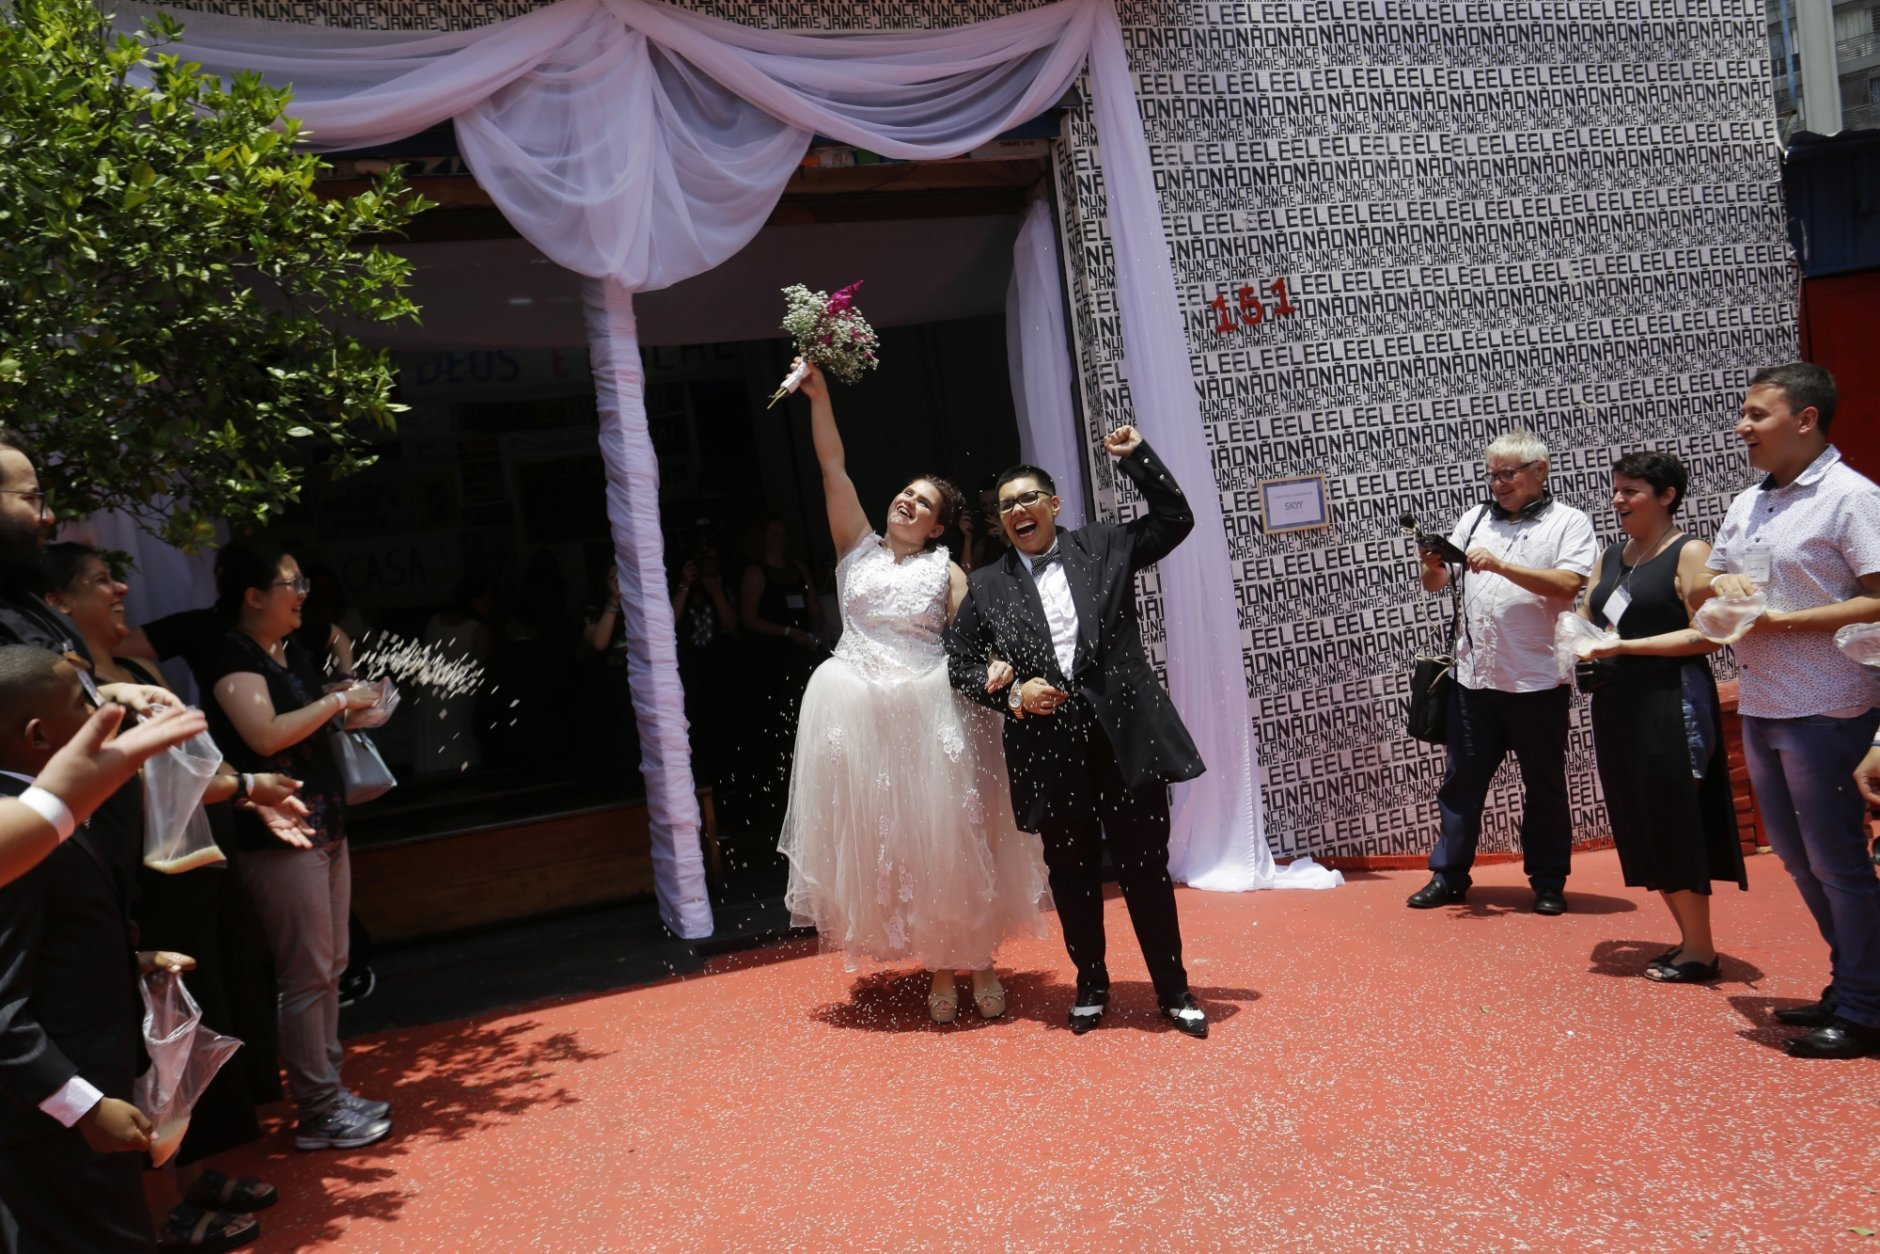 Two women celebrate after getting married in a group marriage of forty same sex couples in Sao Paulo, Brazil, Saturday, Dec. 15, 2018. With the election of ultra-rightist Jair Bolsonaro as president, hundreds of same sex couples began to marry, fearing that the administration of Bolsonaro, who accumulates a history of homophobic and derogatory comments towards gays, could hinder the union of people of the same sex.  (AP Photo/Nelson Antoine)